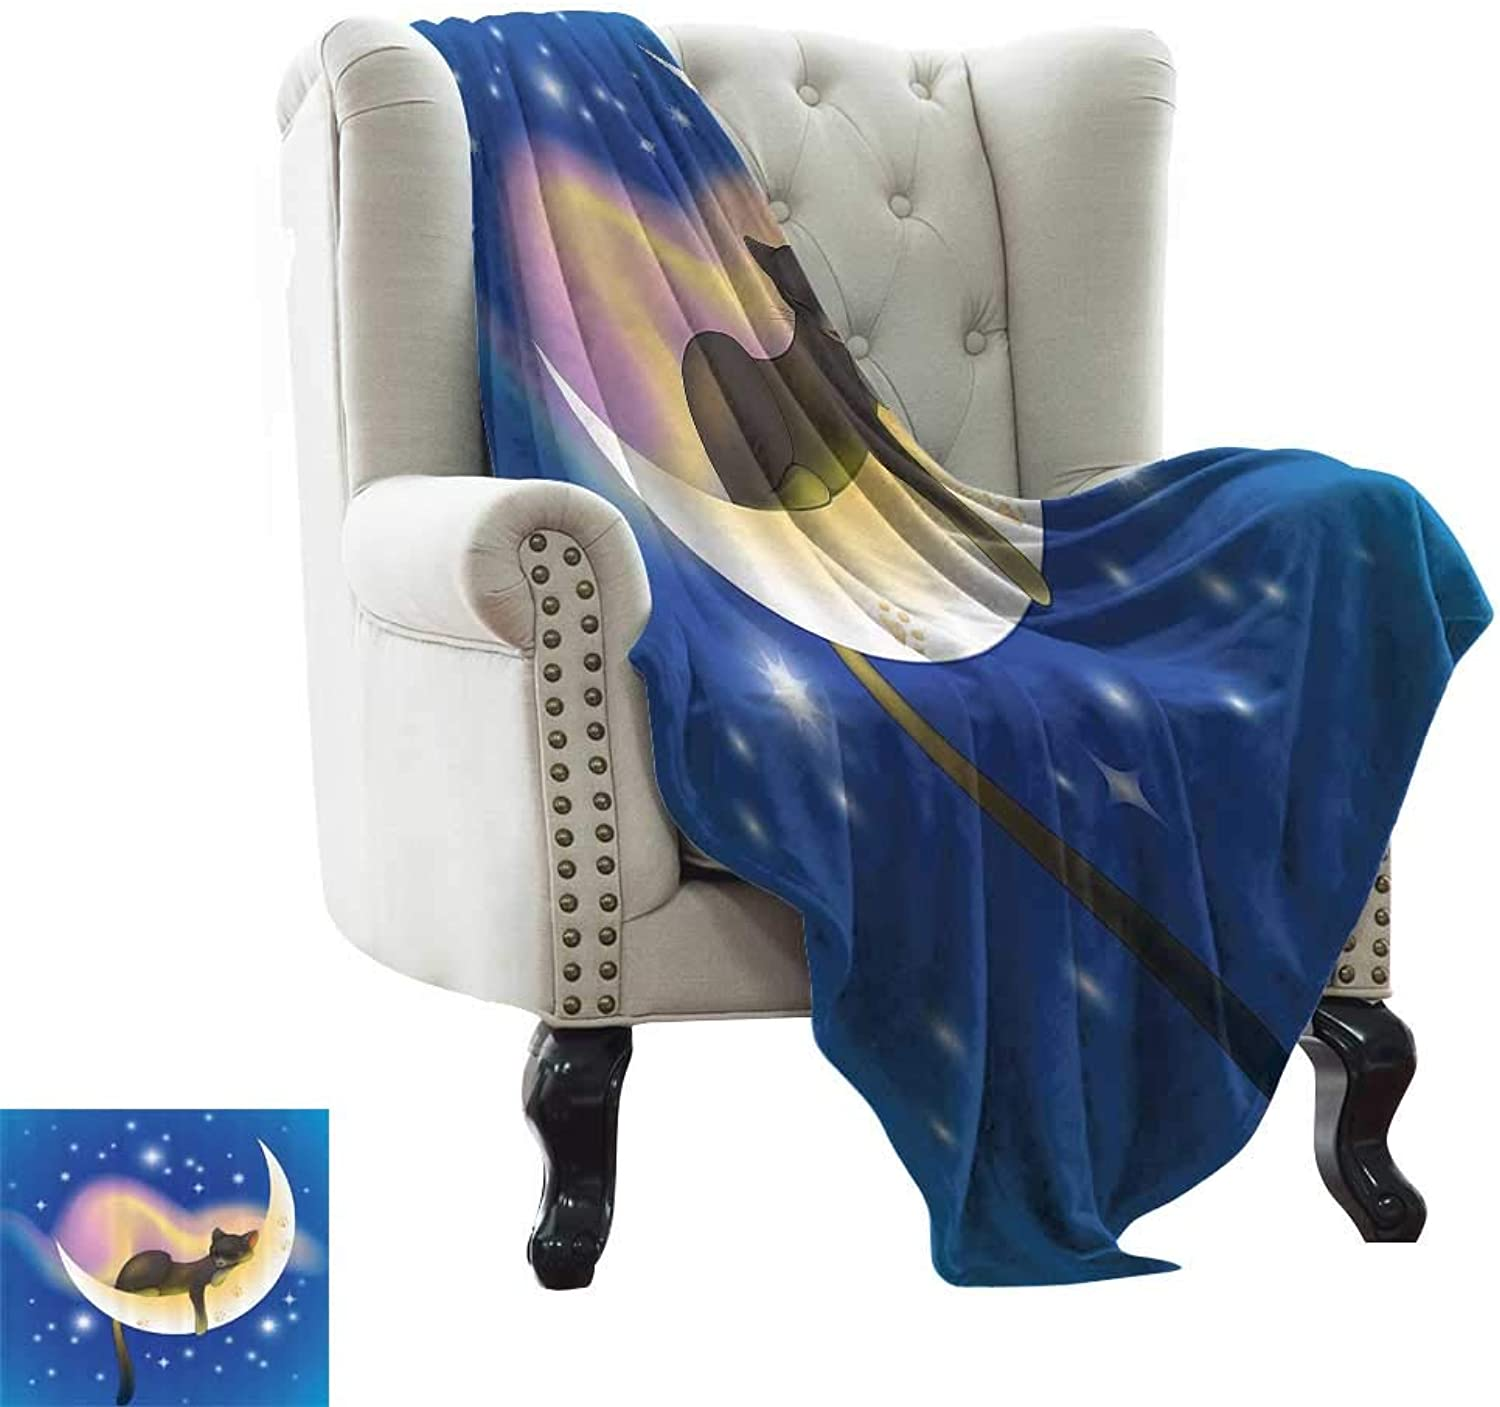 RenteriaDecor Cat,Warm Blanket Cat Sleeping on Crescent Moon Stars Night Sweet Dreams Themed Kids Nursery Design 70 x50  Throw Rug Sofa Bedding bluee Yellow